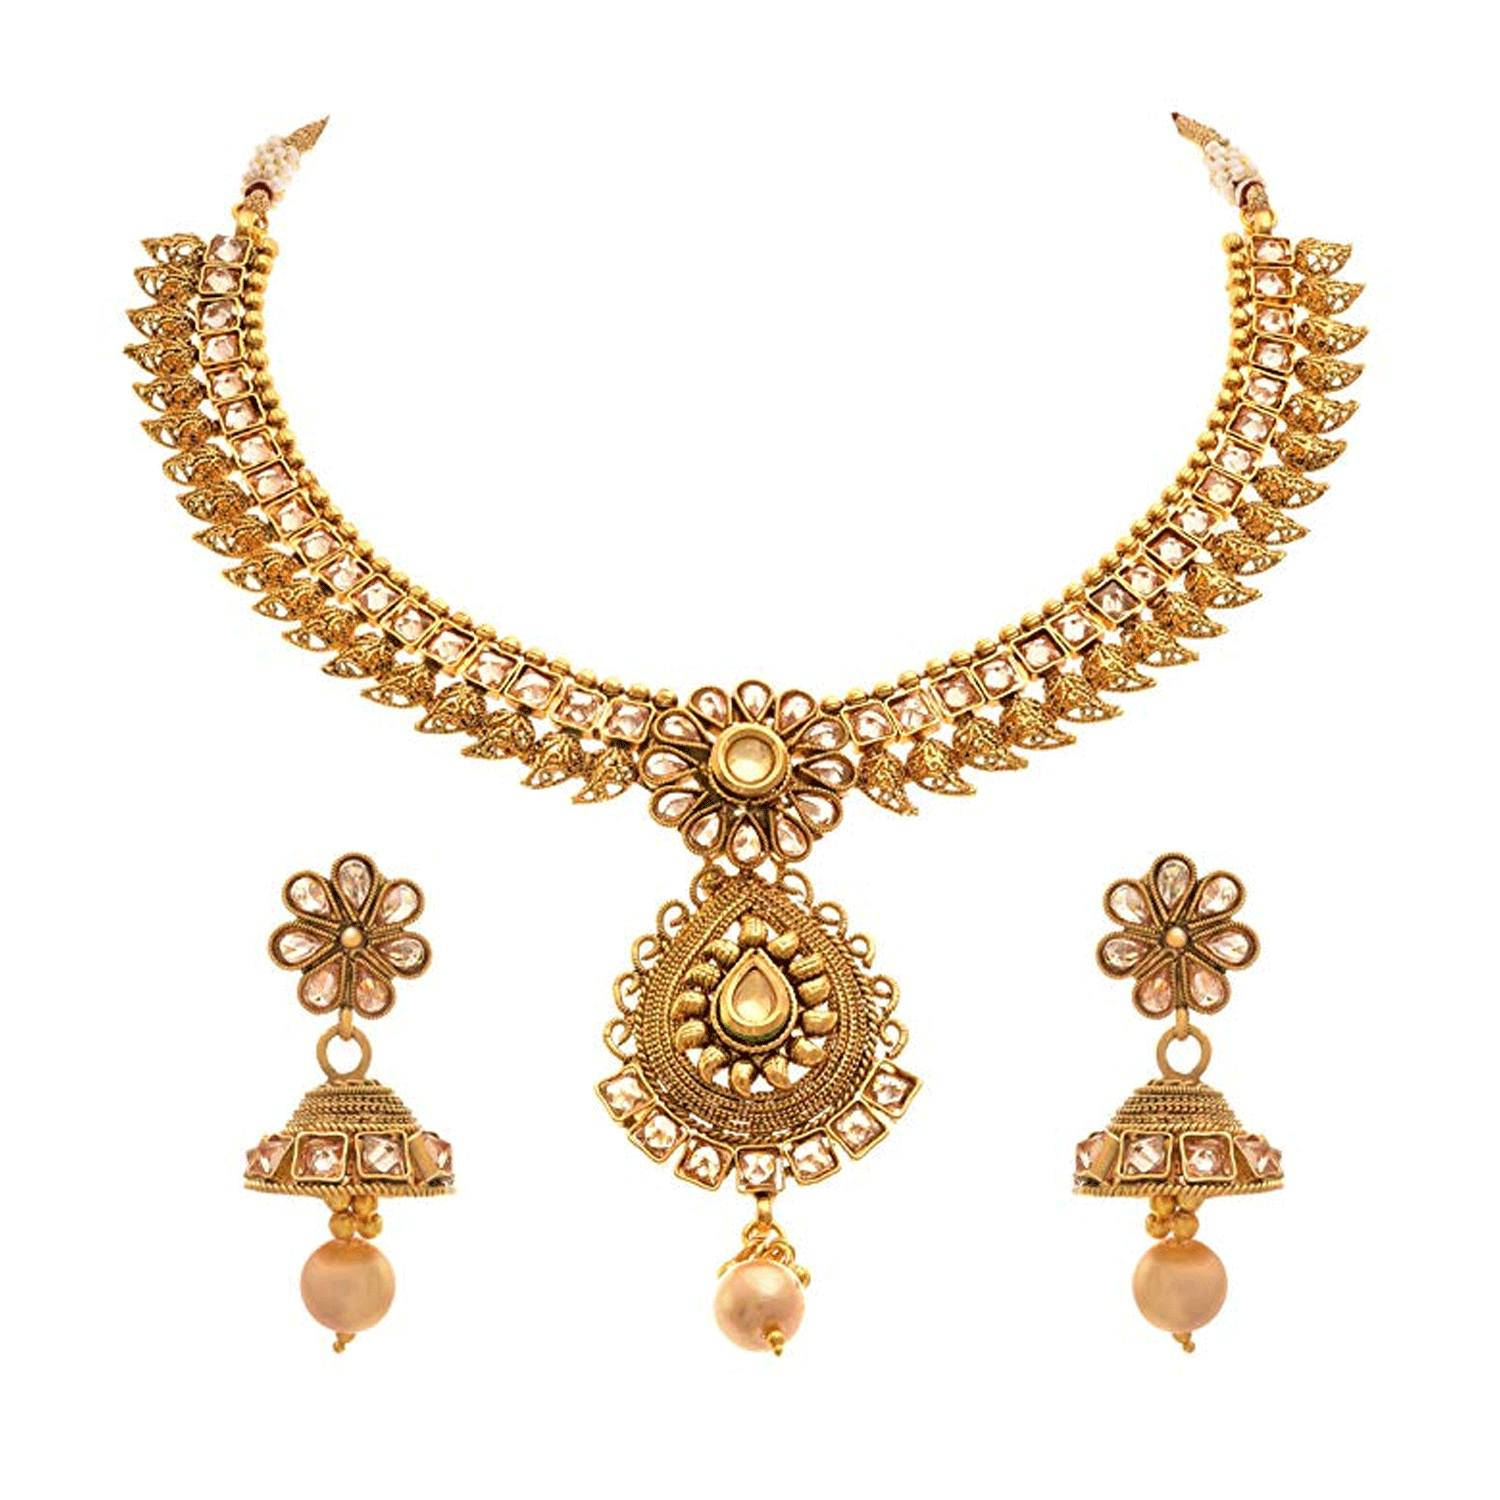 JFL - Traditional Ethnic One Gram Gold Plated Kundan Polki Designer Necklace Set / Jewellery Set for Women & Girls